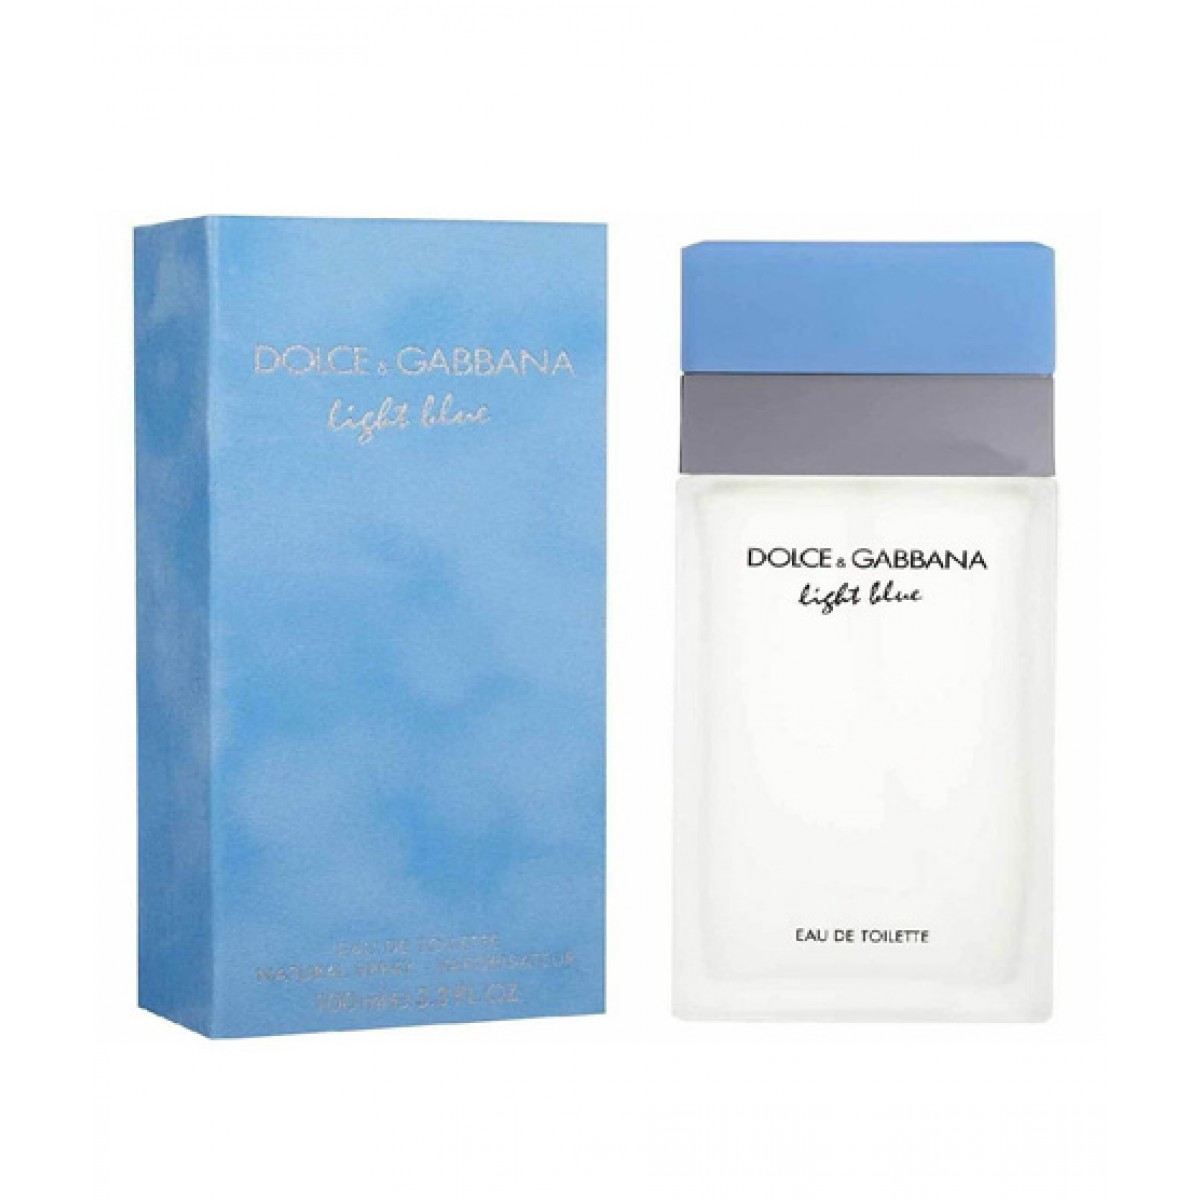 896a3b6a6 Dolce & Gabbana Light Blue Eau De Toilette 100ml Price in Pakistan | Buy  Dolce & Gabbana Eau De Toilette For Women | iShopping.pk